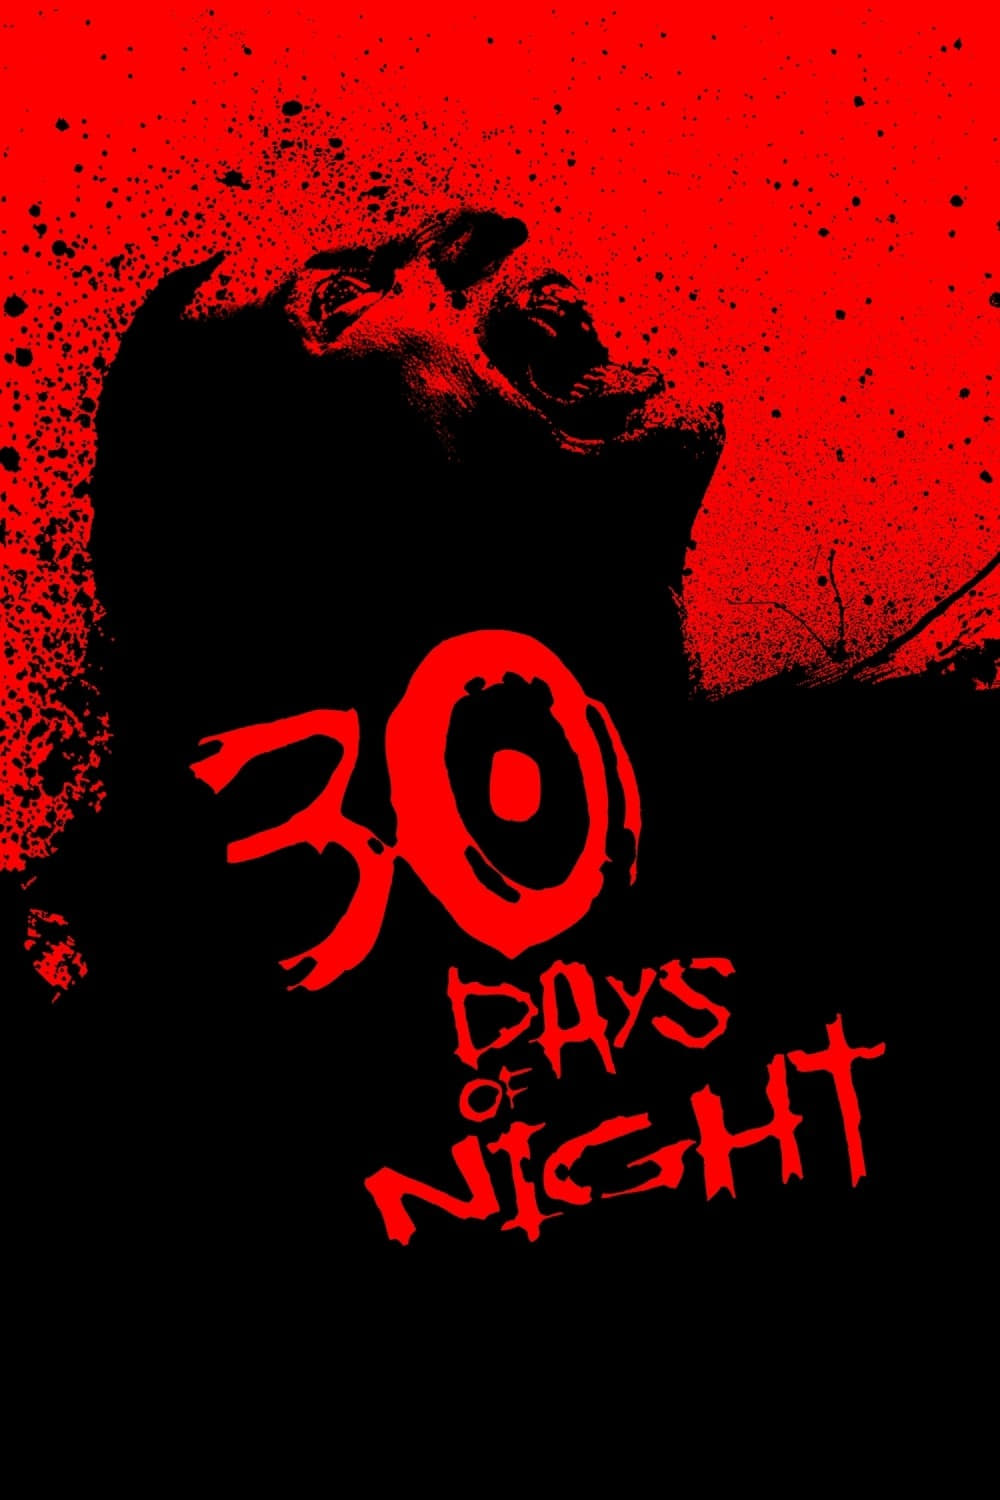 30 Days of Night kapak